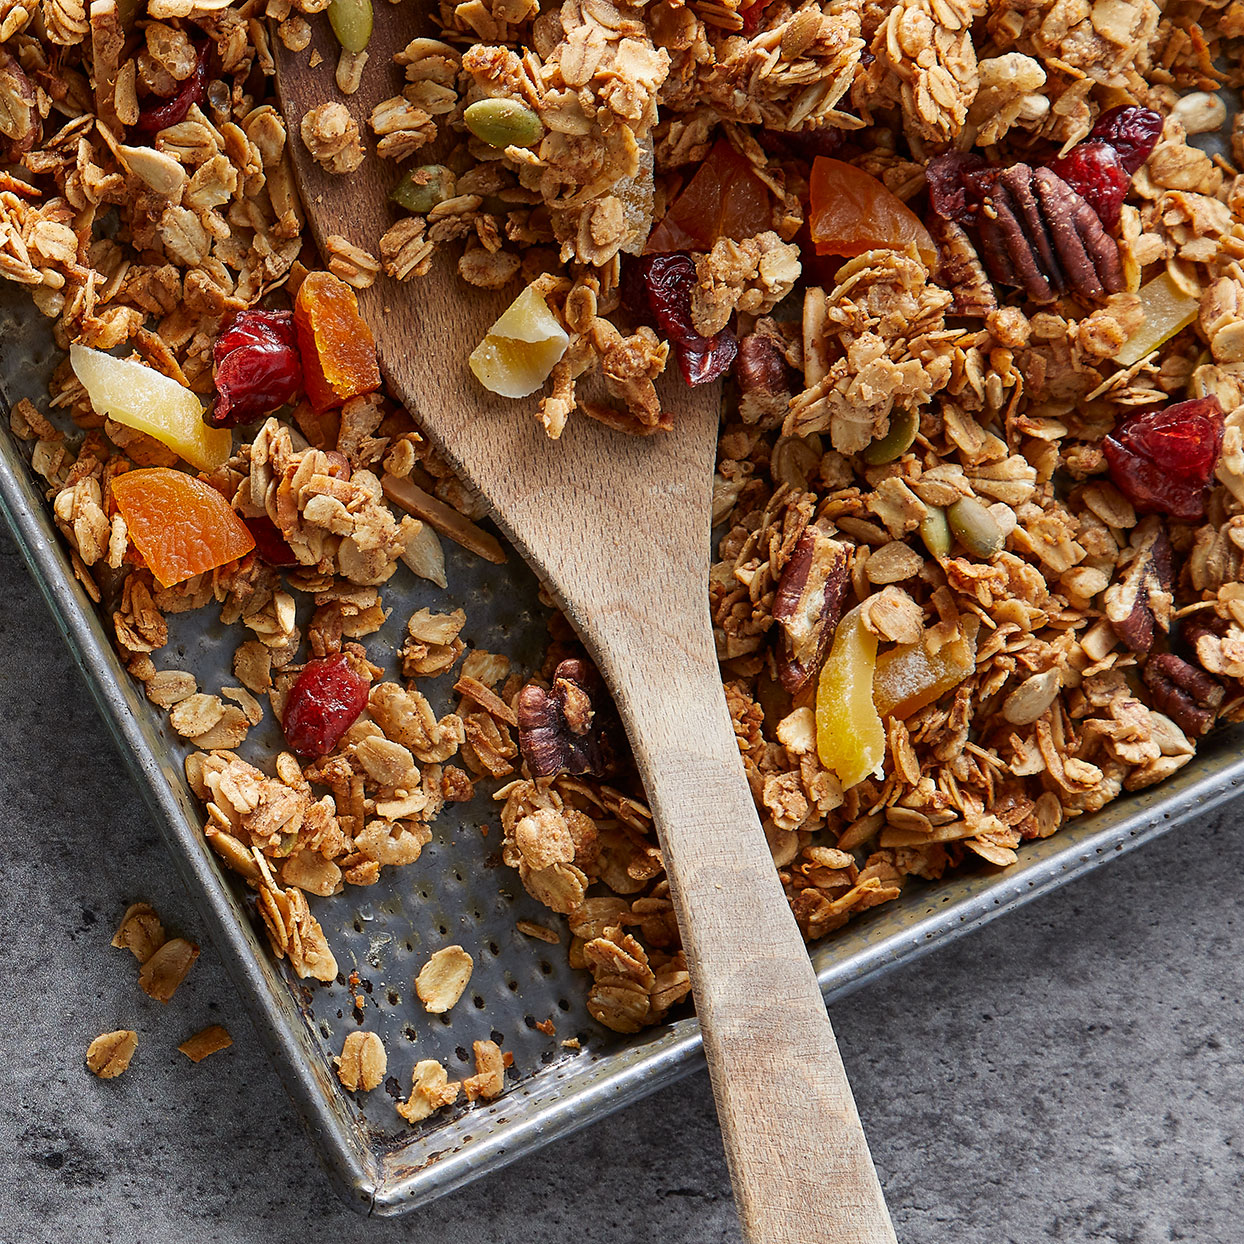 Grandpa's Homemade Granola Trusted Brands